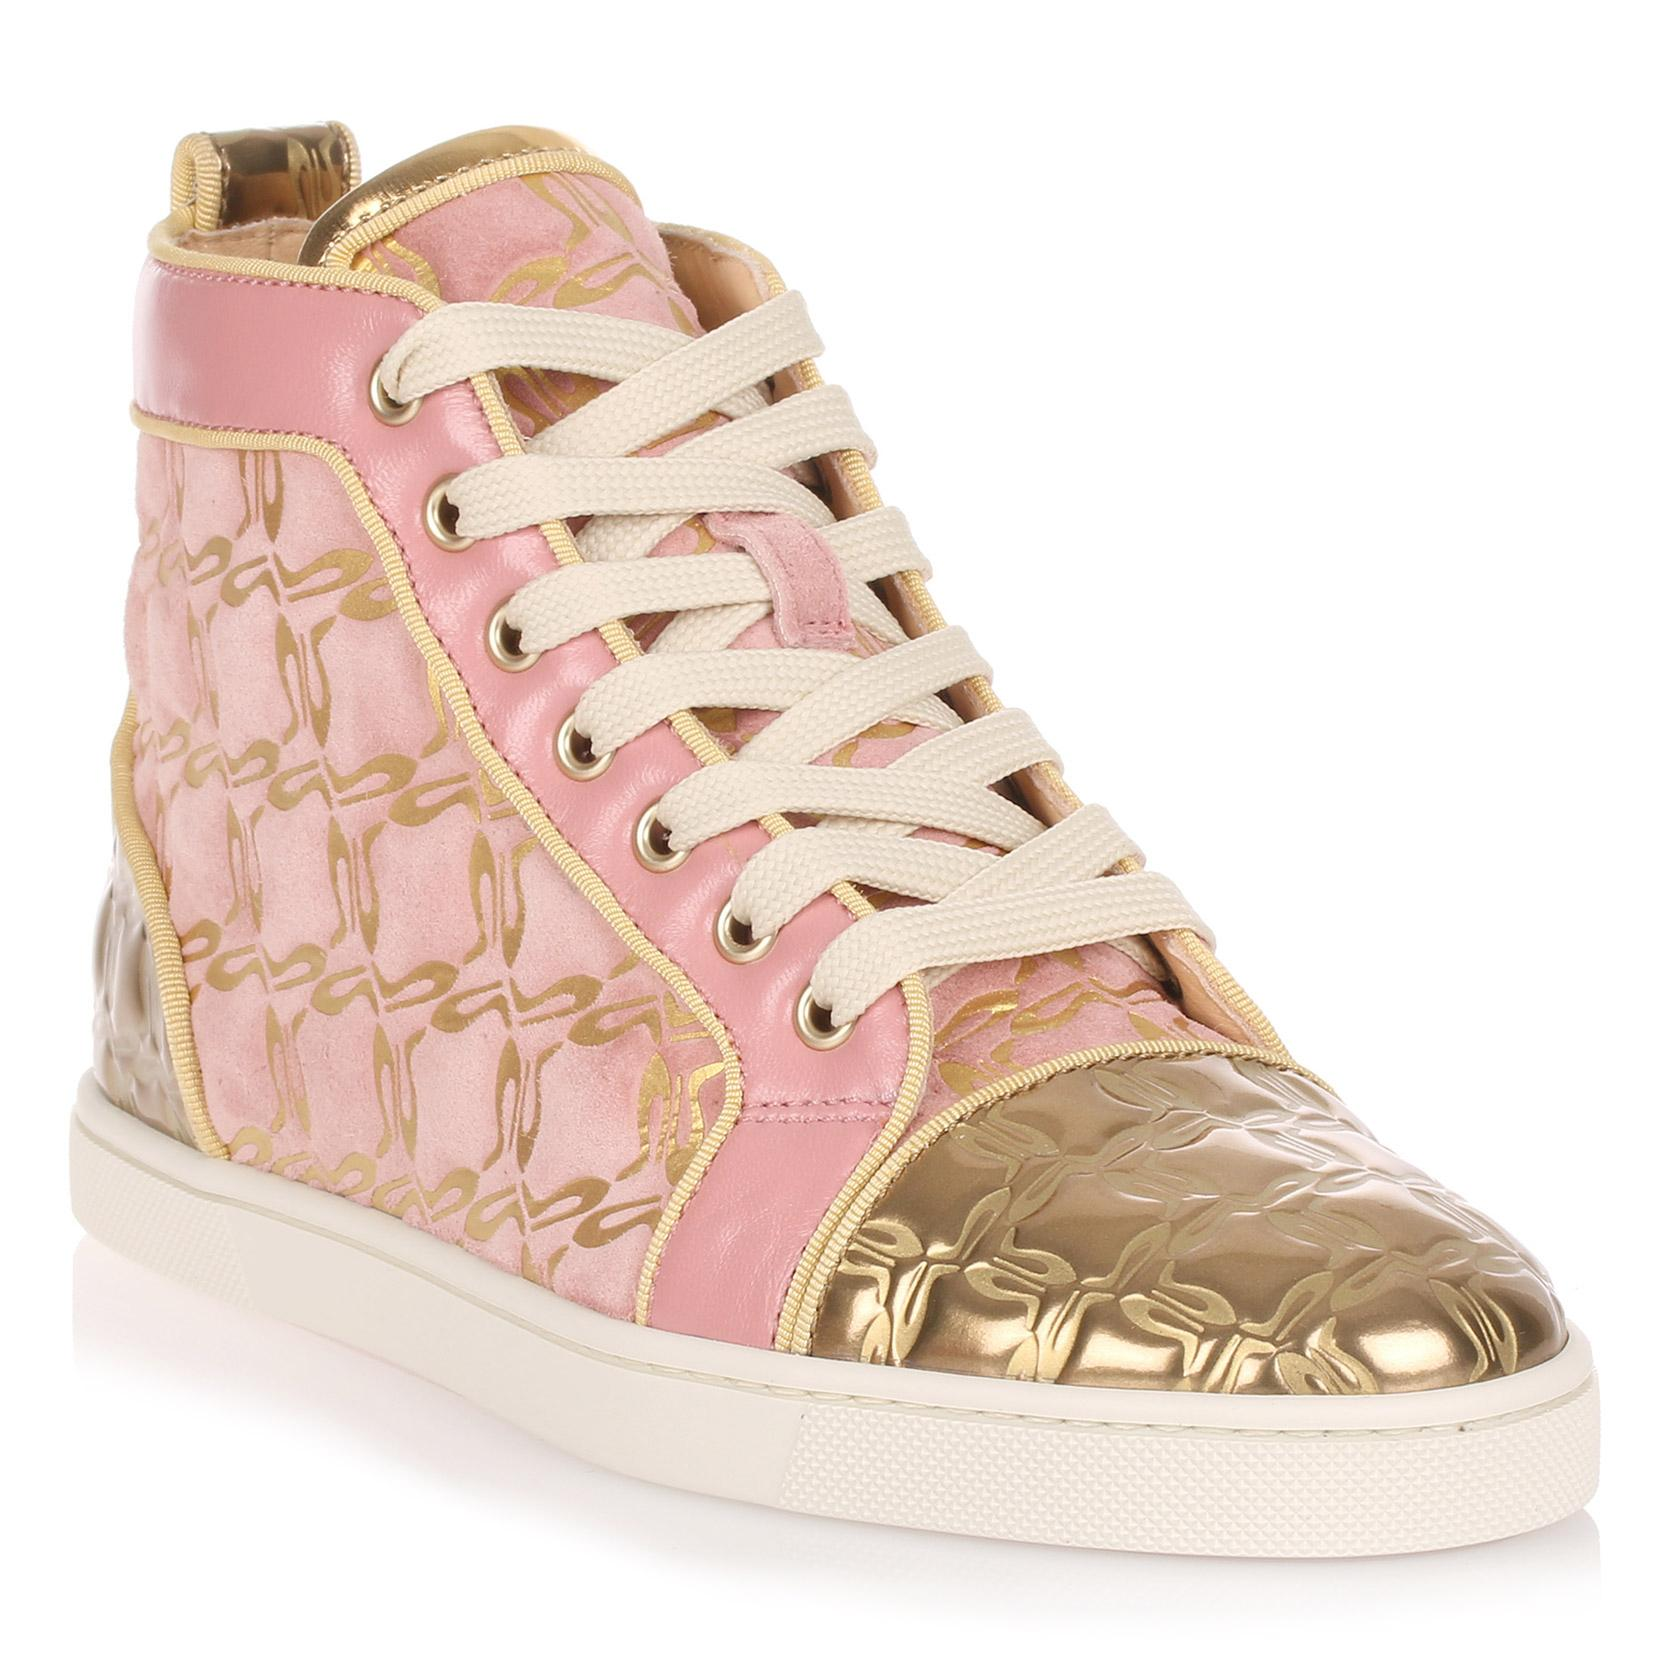 reputable site eec35 92341 Bip Bip Pink And Gold Suede Sneaker